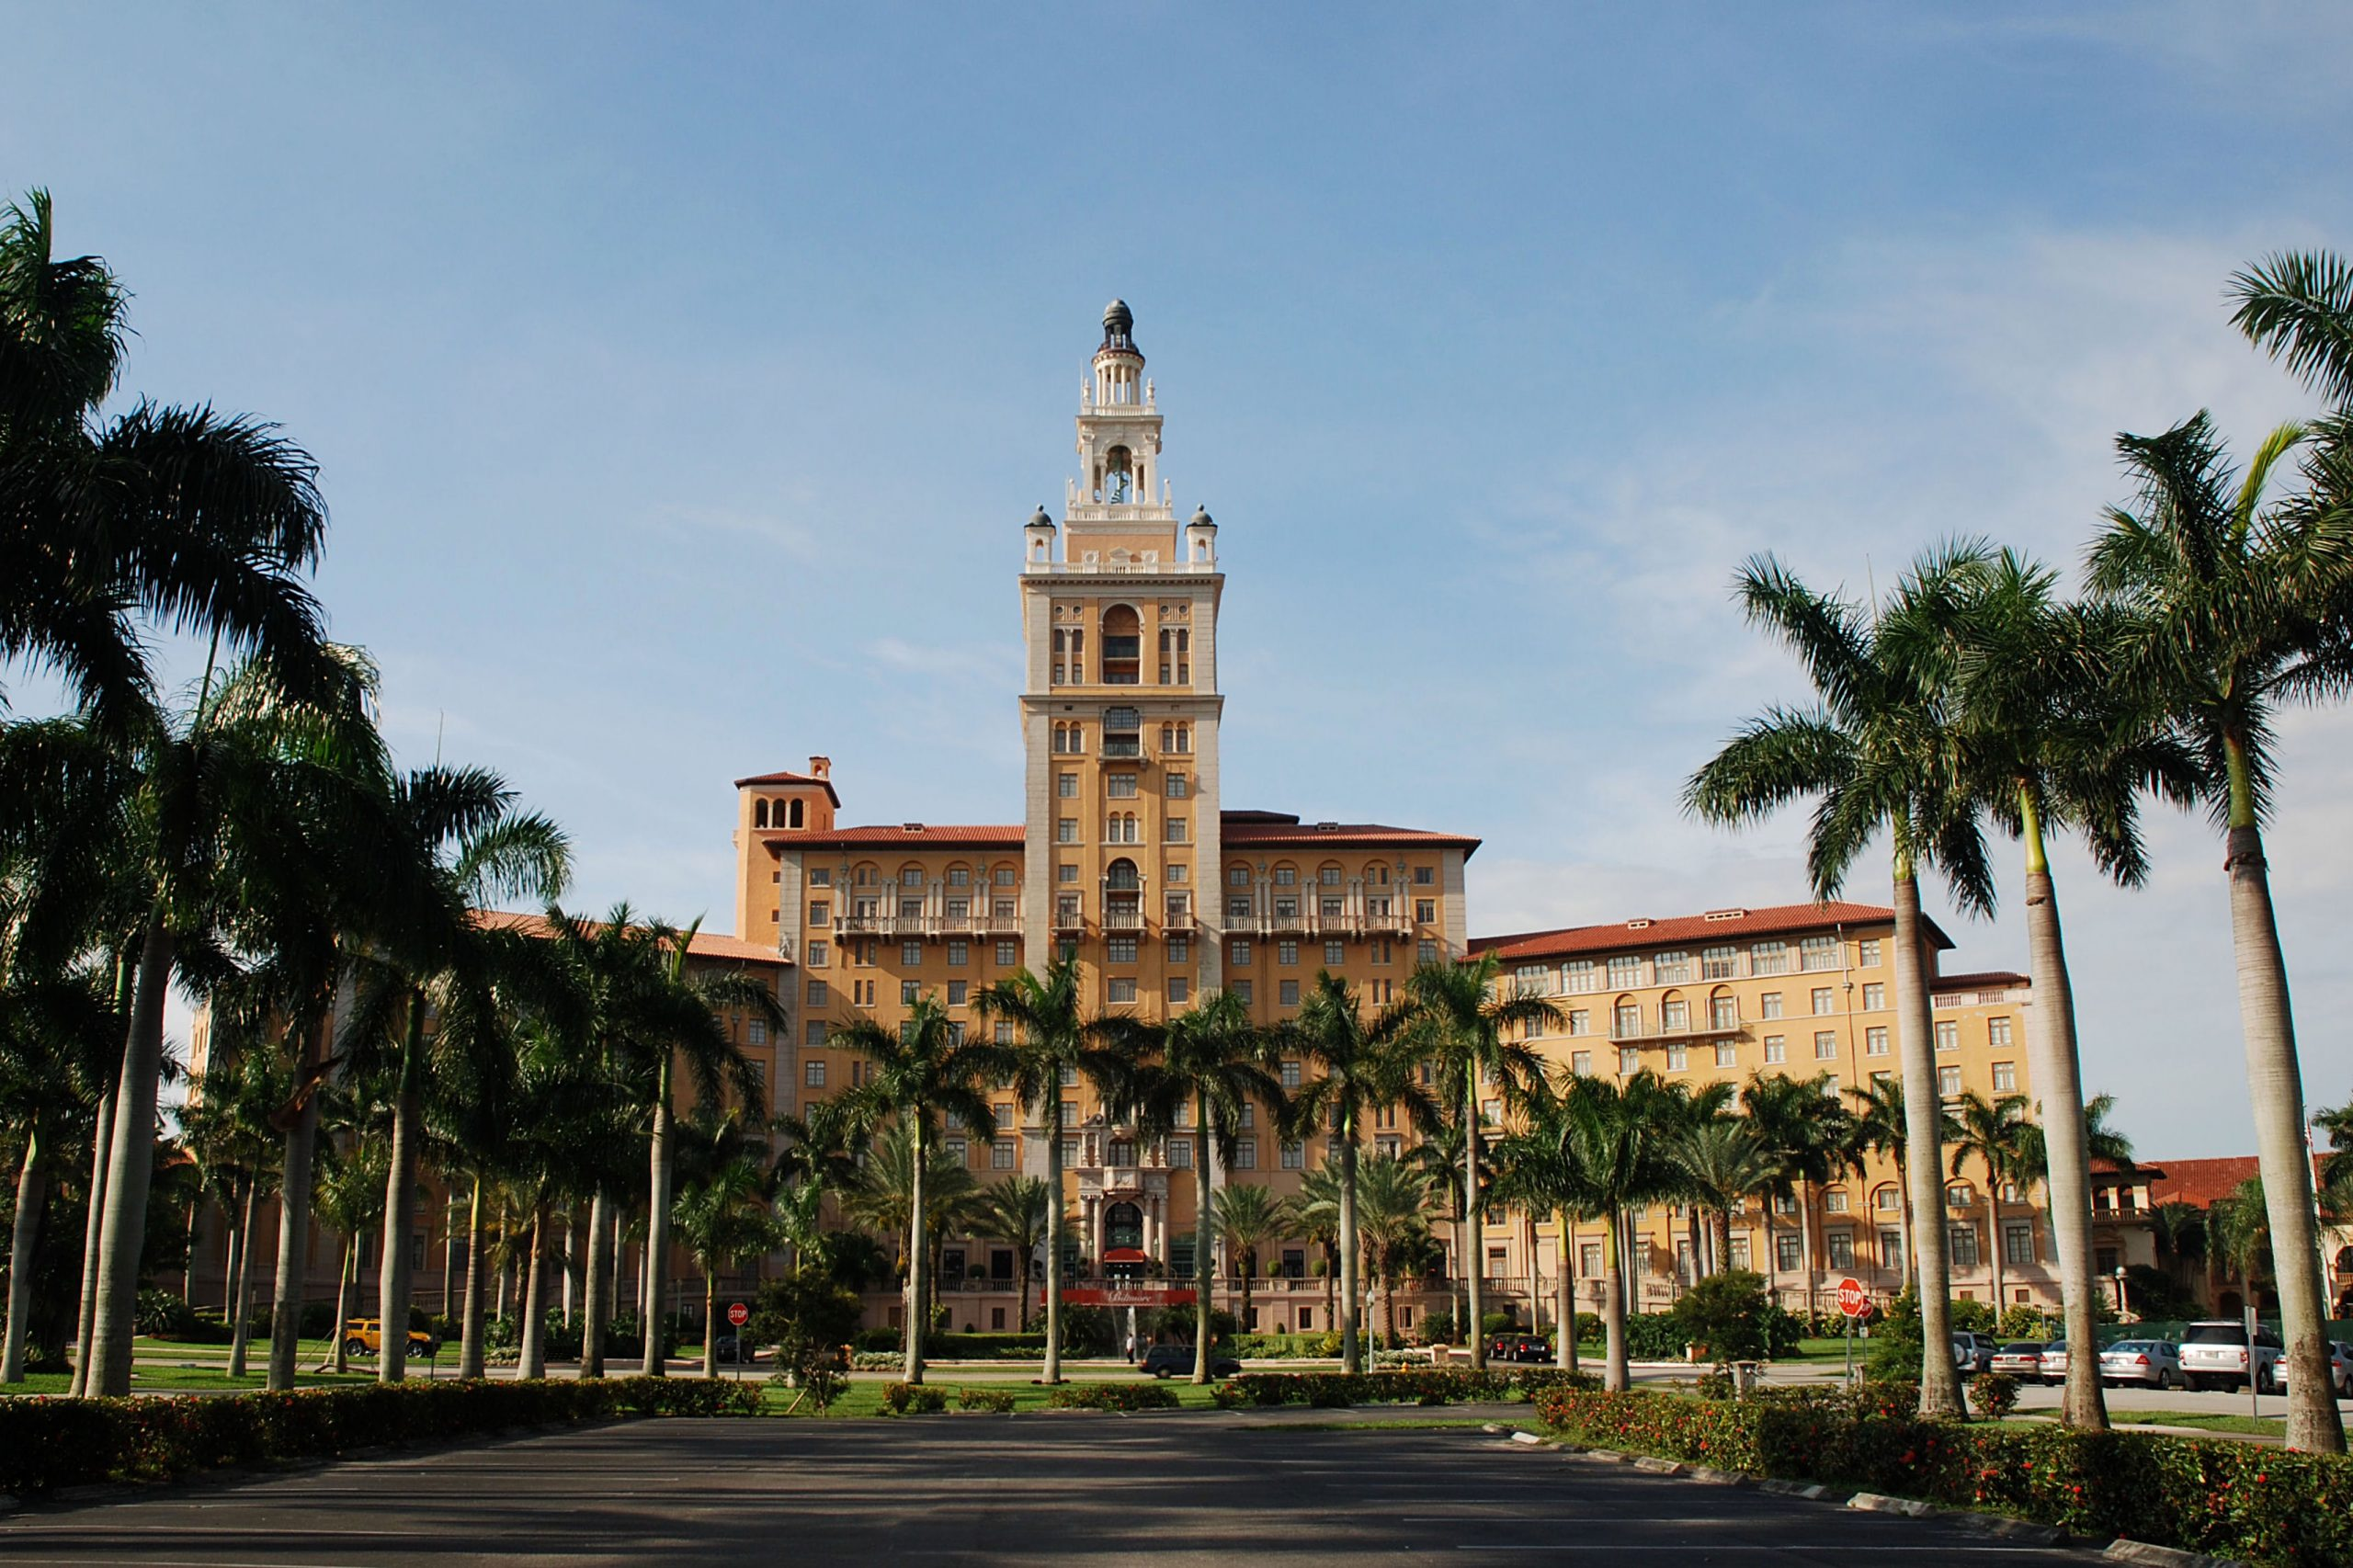 The Biltmore Hotel Ghosts - Photo